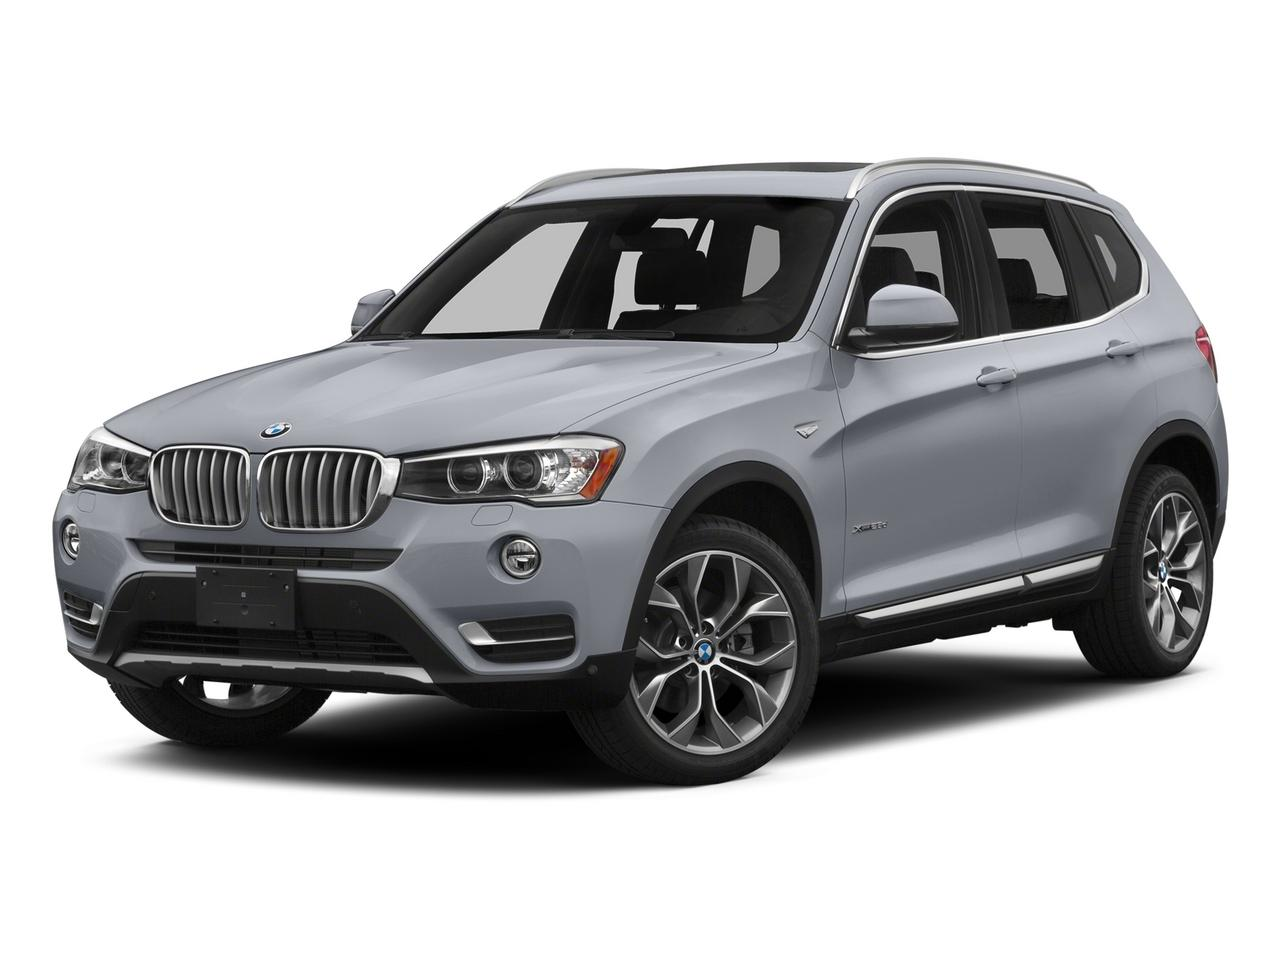 2015 BMW X3 xDrive28i Vehicle Photo in Spokane, WA 99207